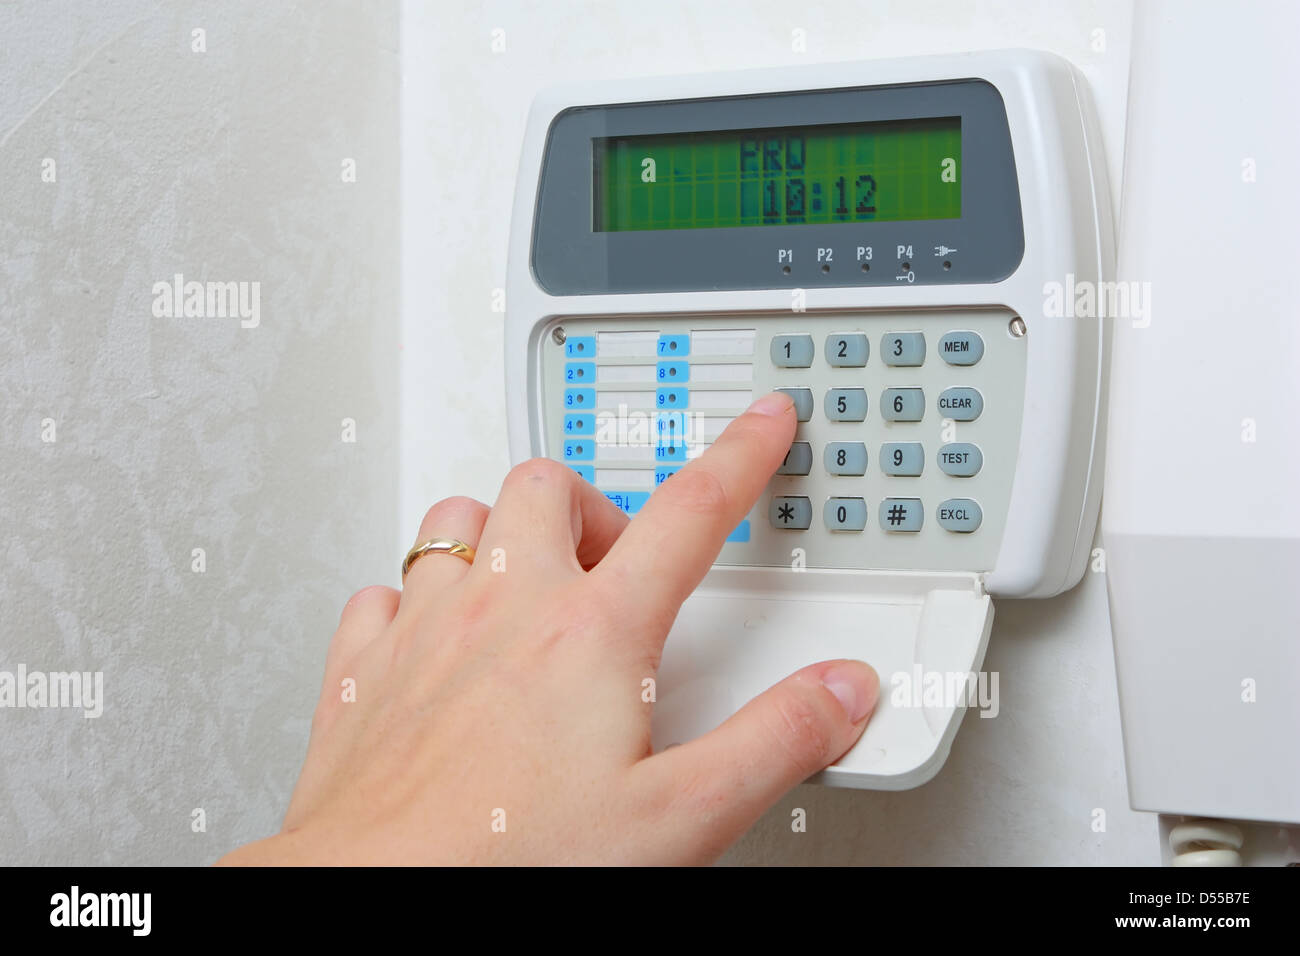 Domestic alarm system - Stock Image